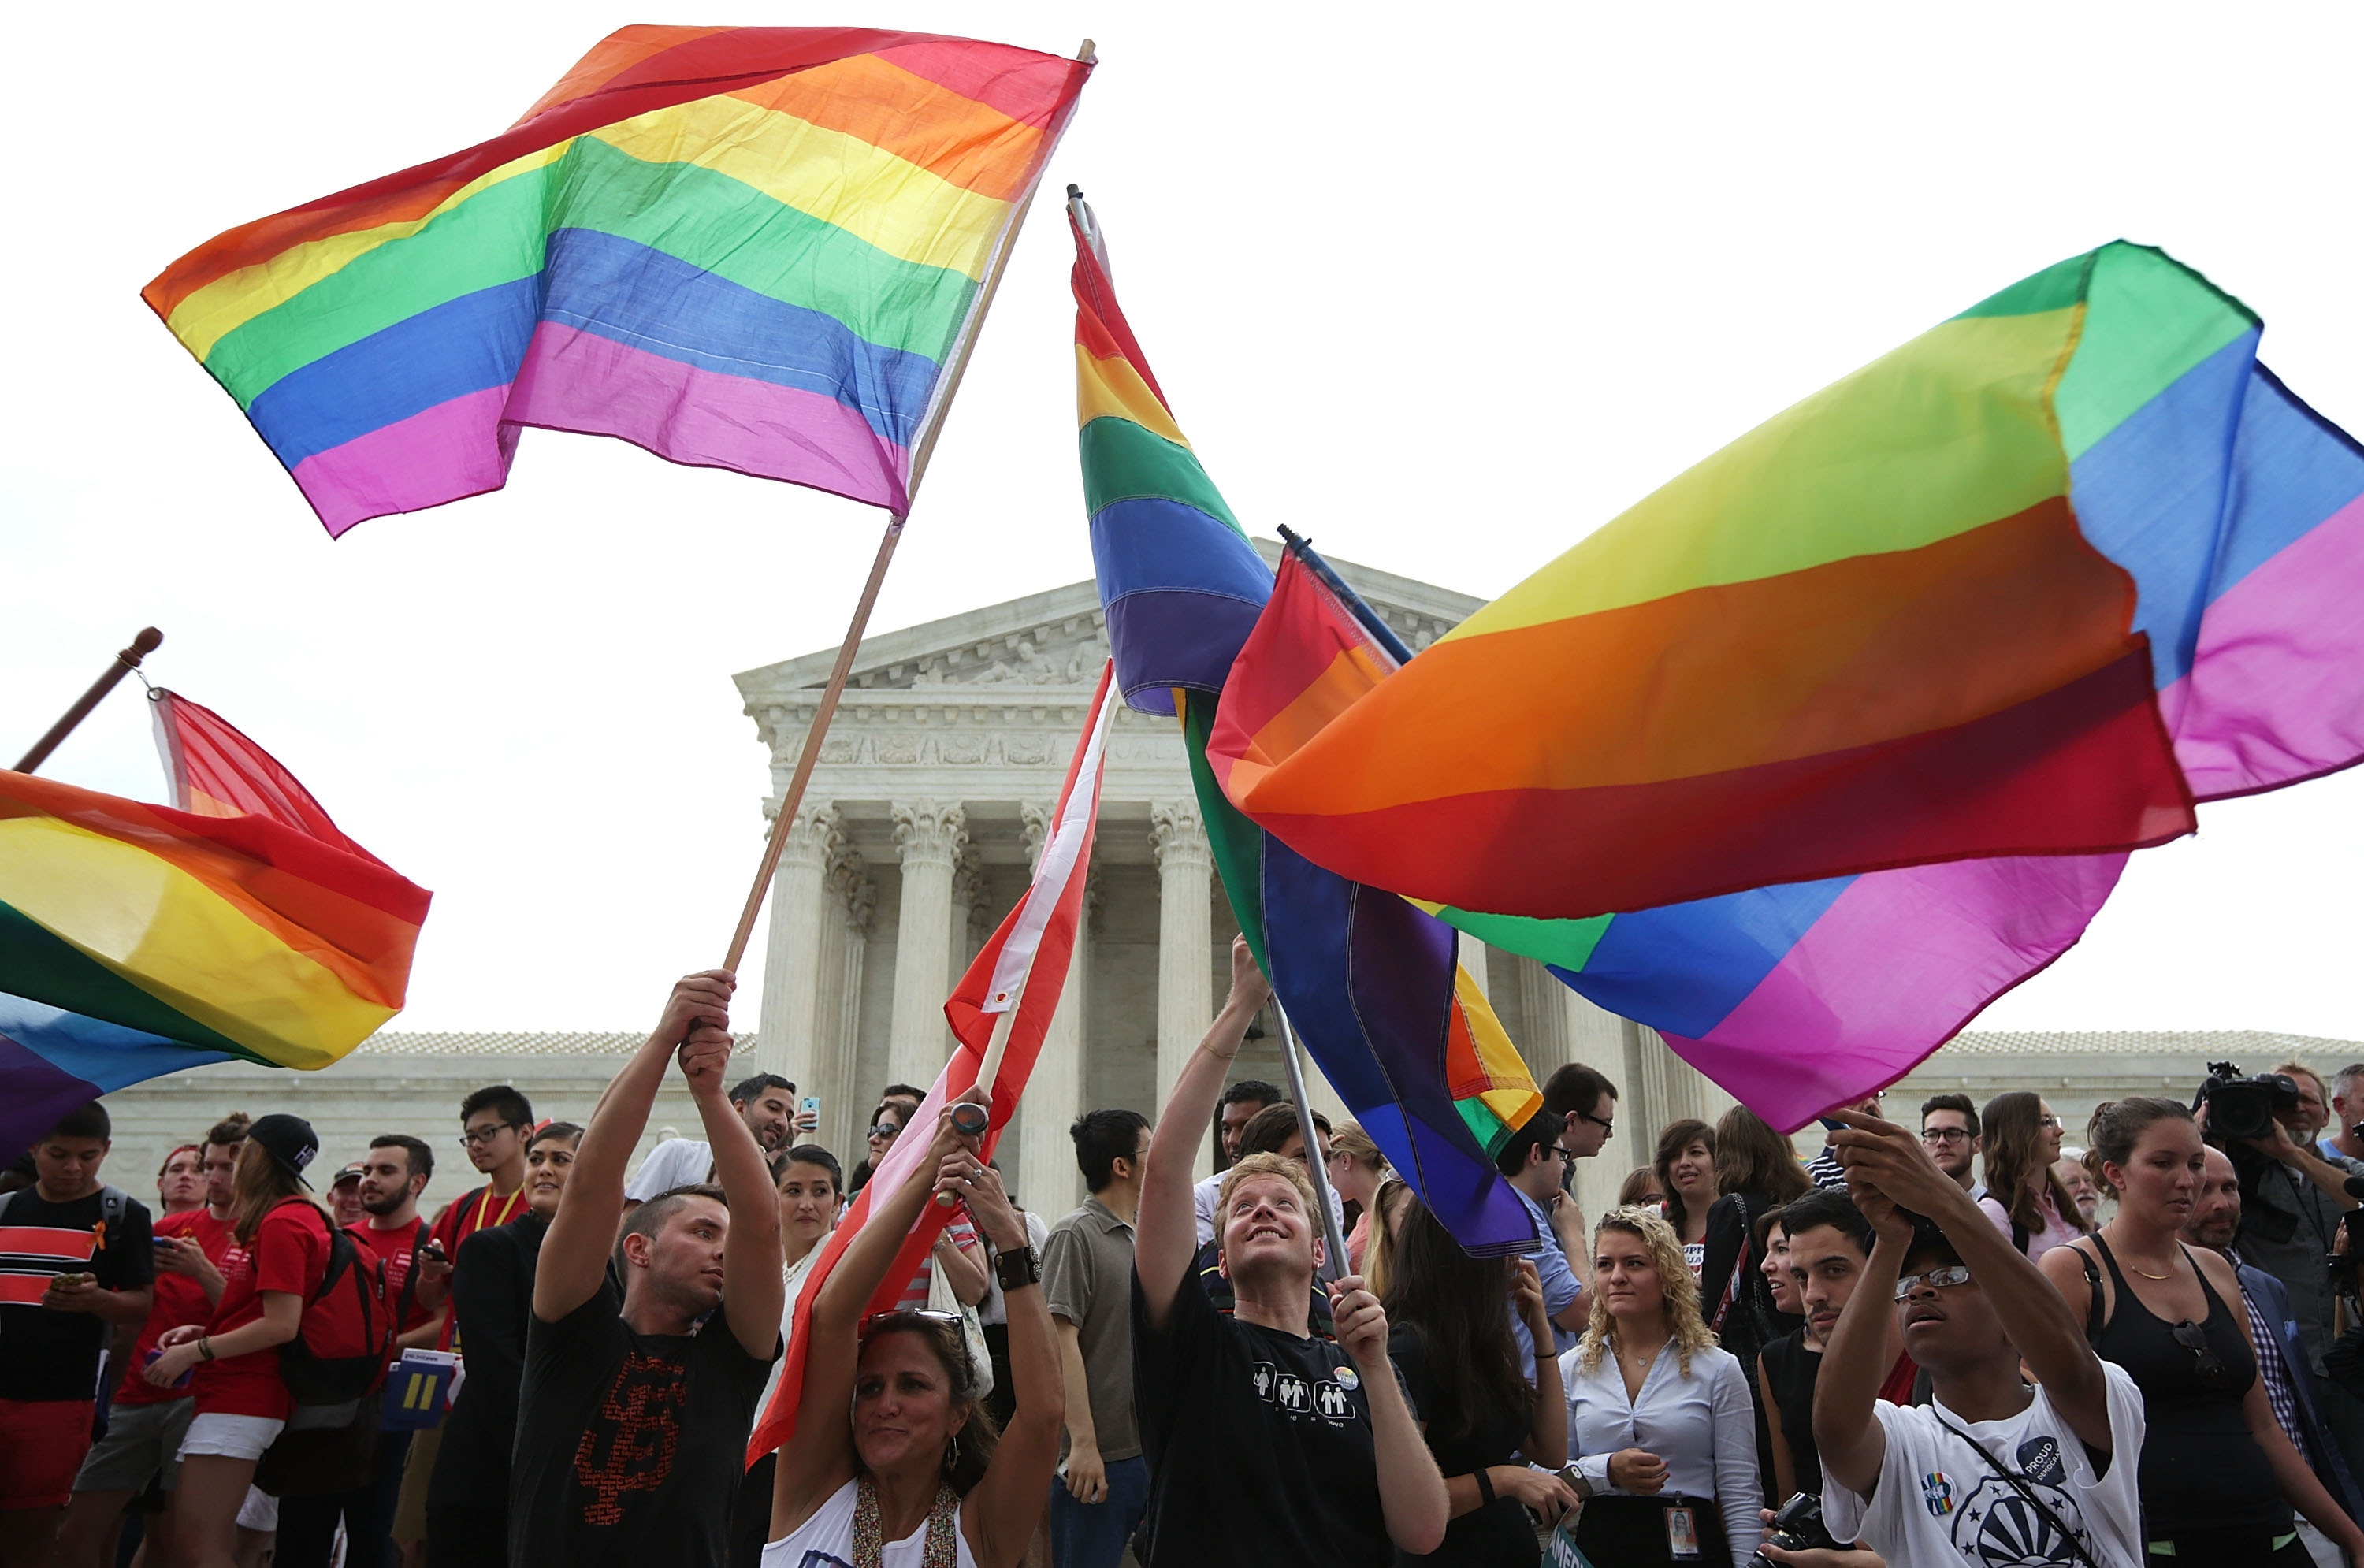 Same-sex marriage supporters rejoice Friday after the U.S Supreme Court handed down a ruling in favor of same-sex marriage. The high court ruled that same-sex couples have the right to marry in all 50 states.